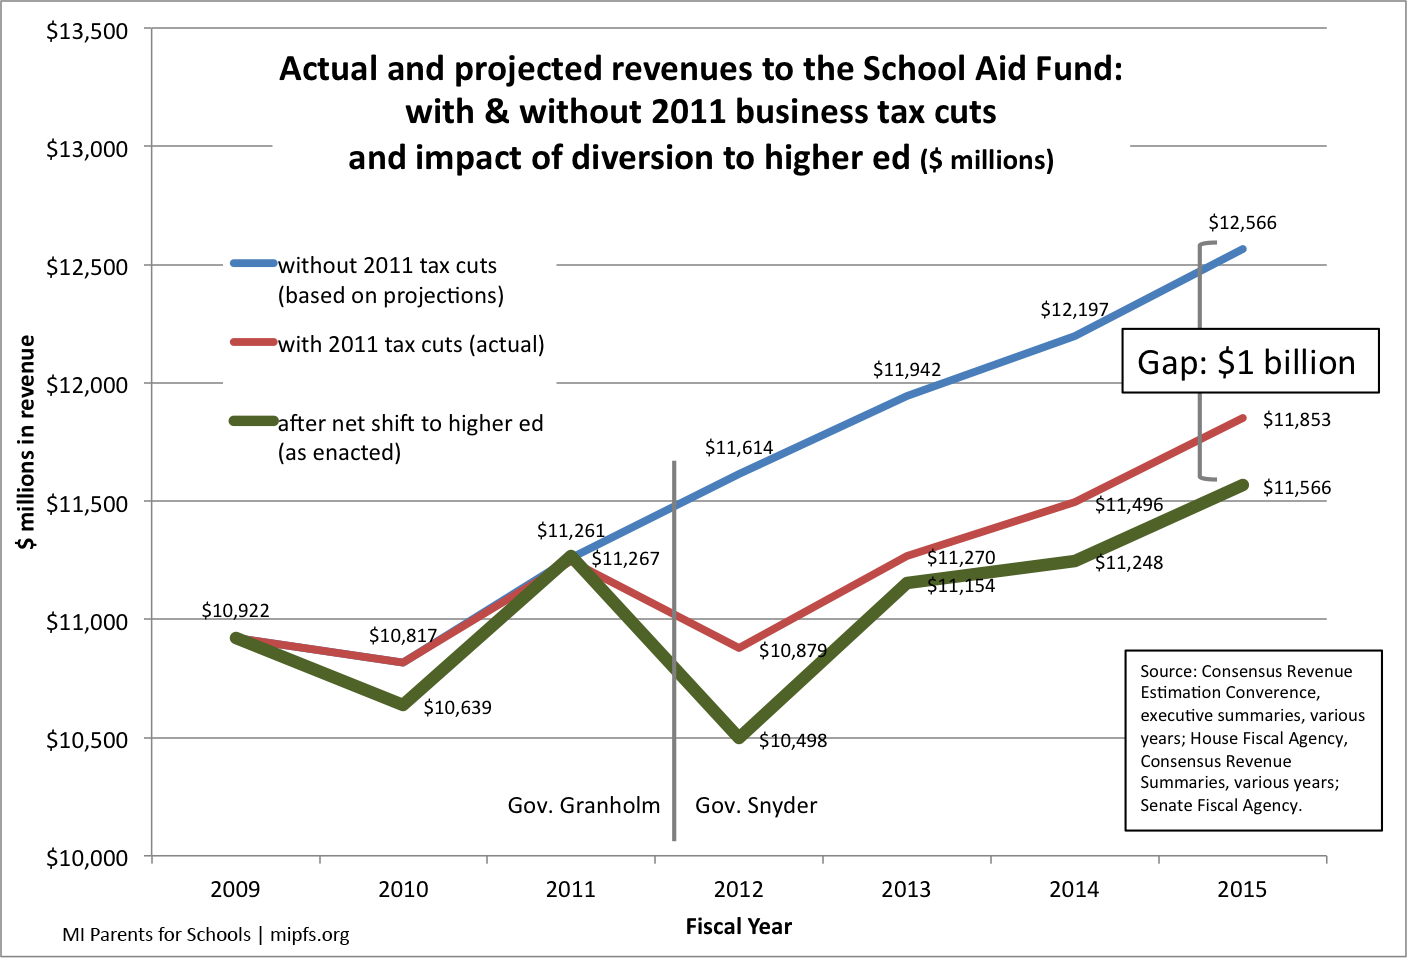 School aid revenue before and after the tax cuts